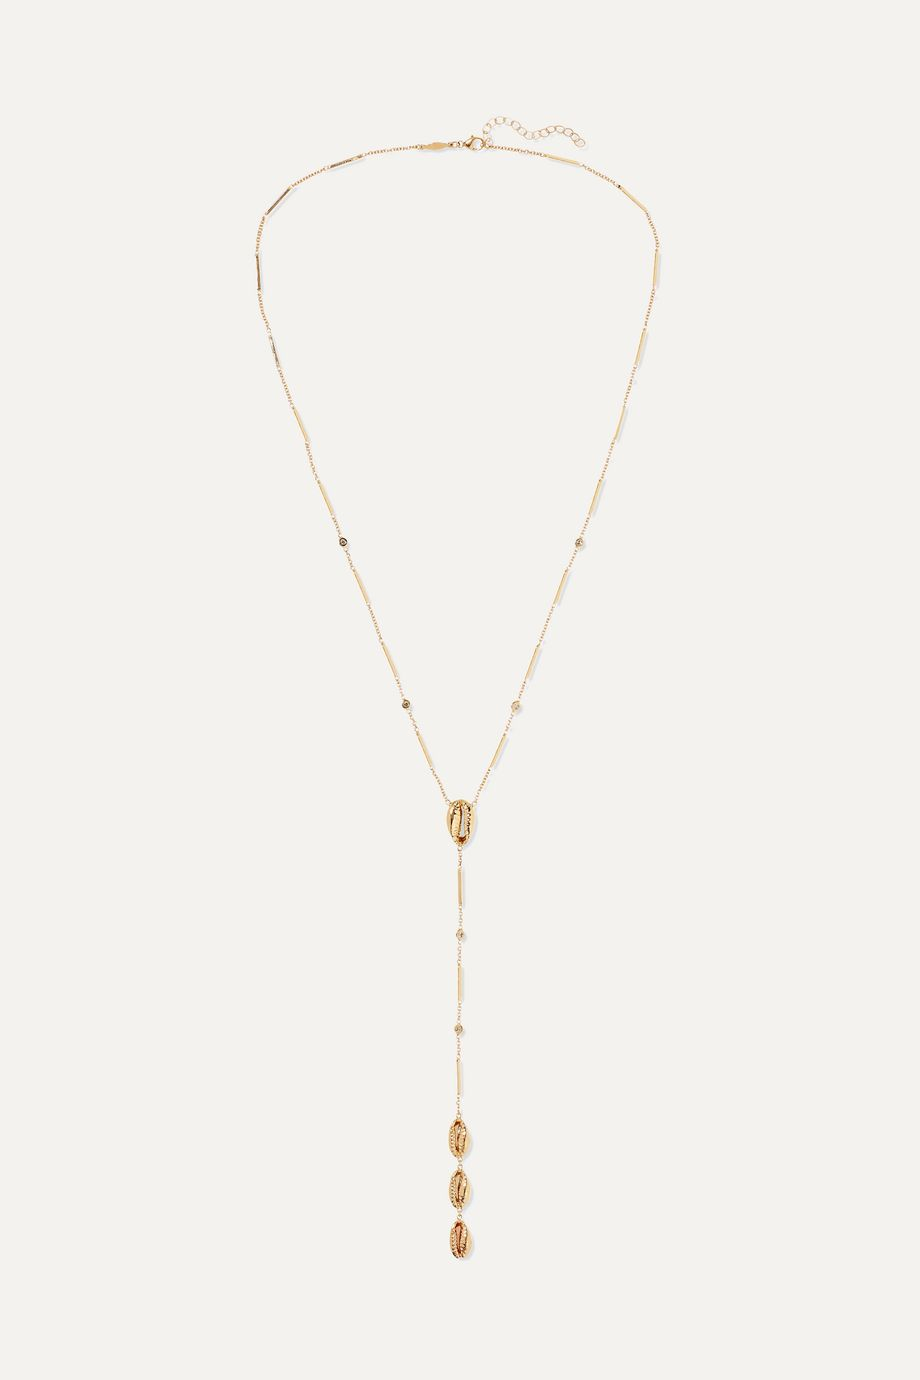 Jacquie Aiche 14-karat gold diamond necklace